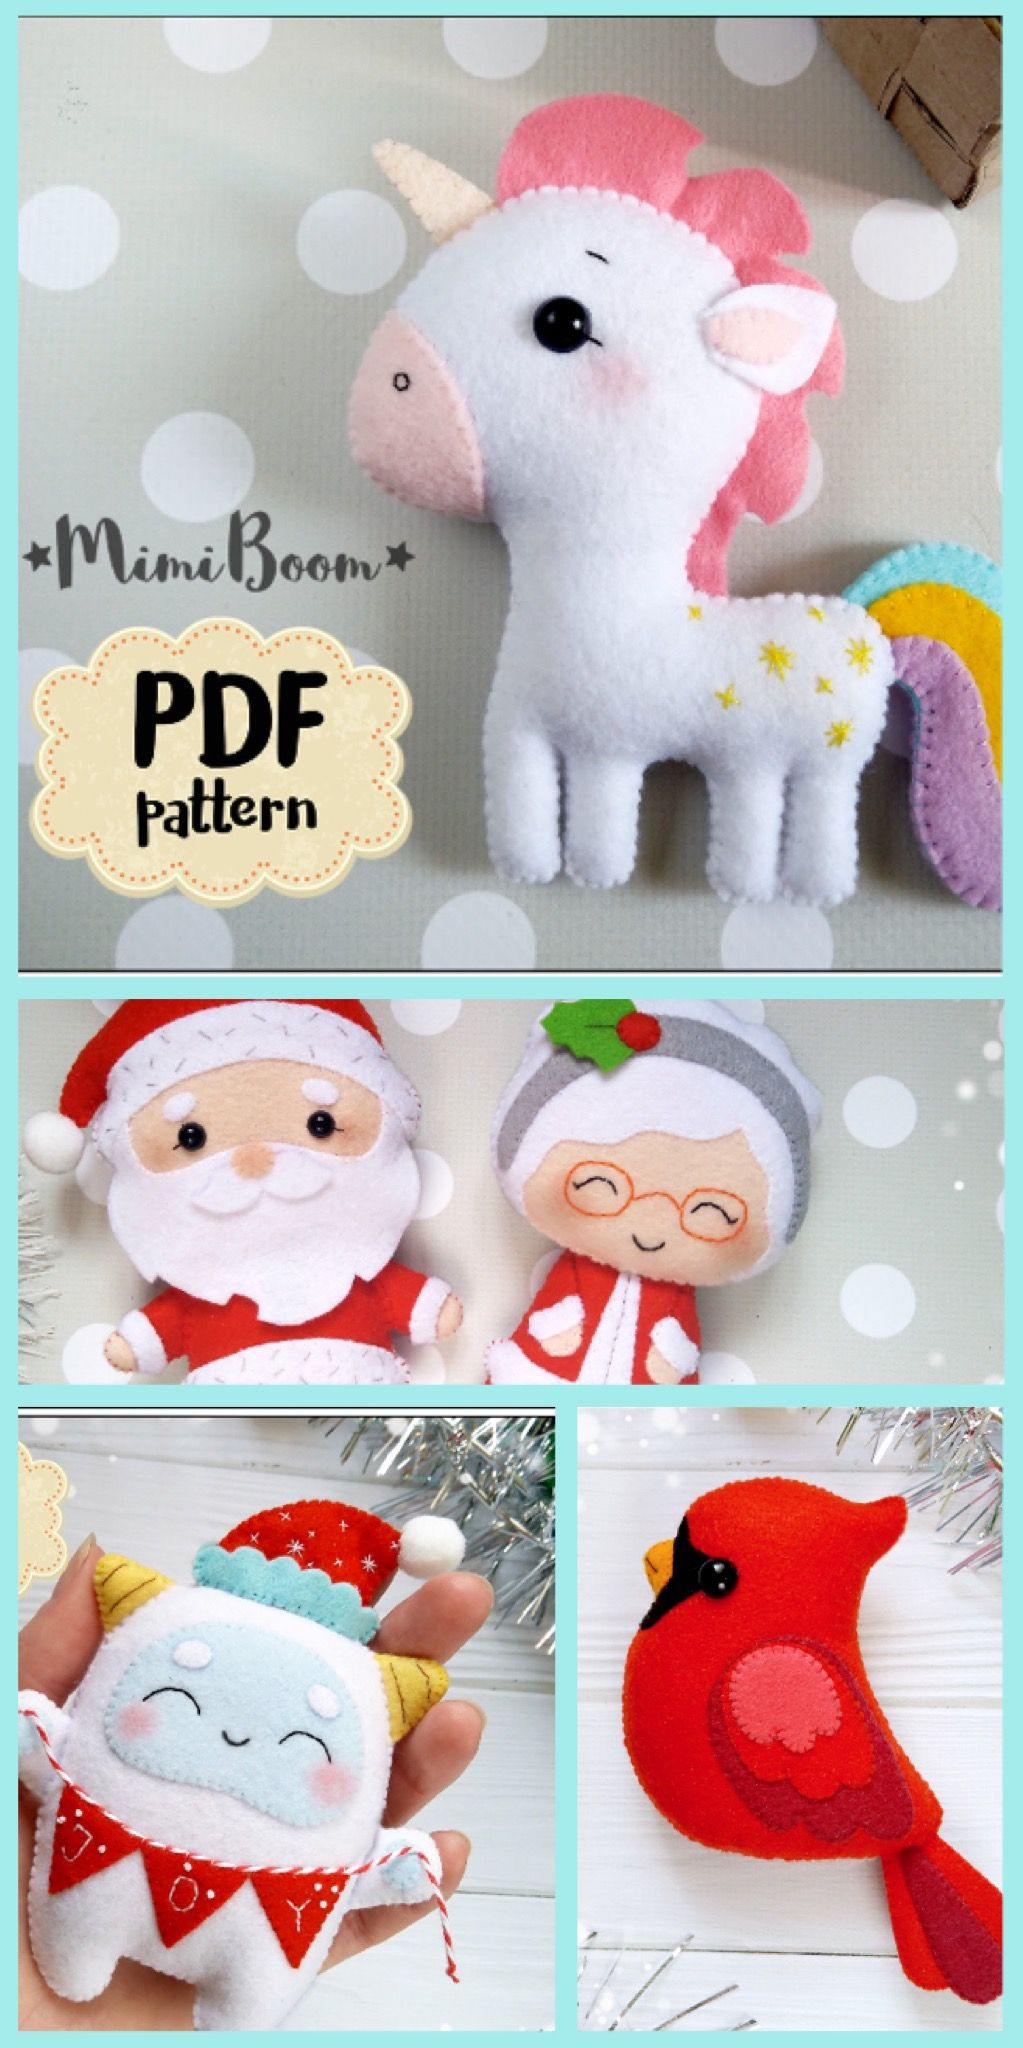 Cute Little Felt Ornaments To Make Download The Pattern Instantly